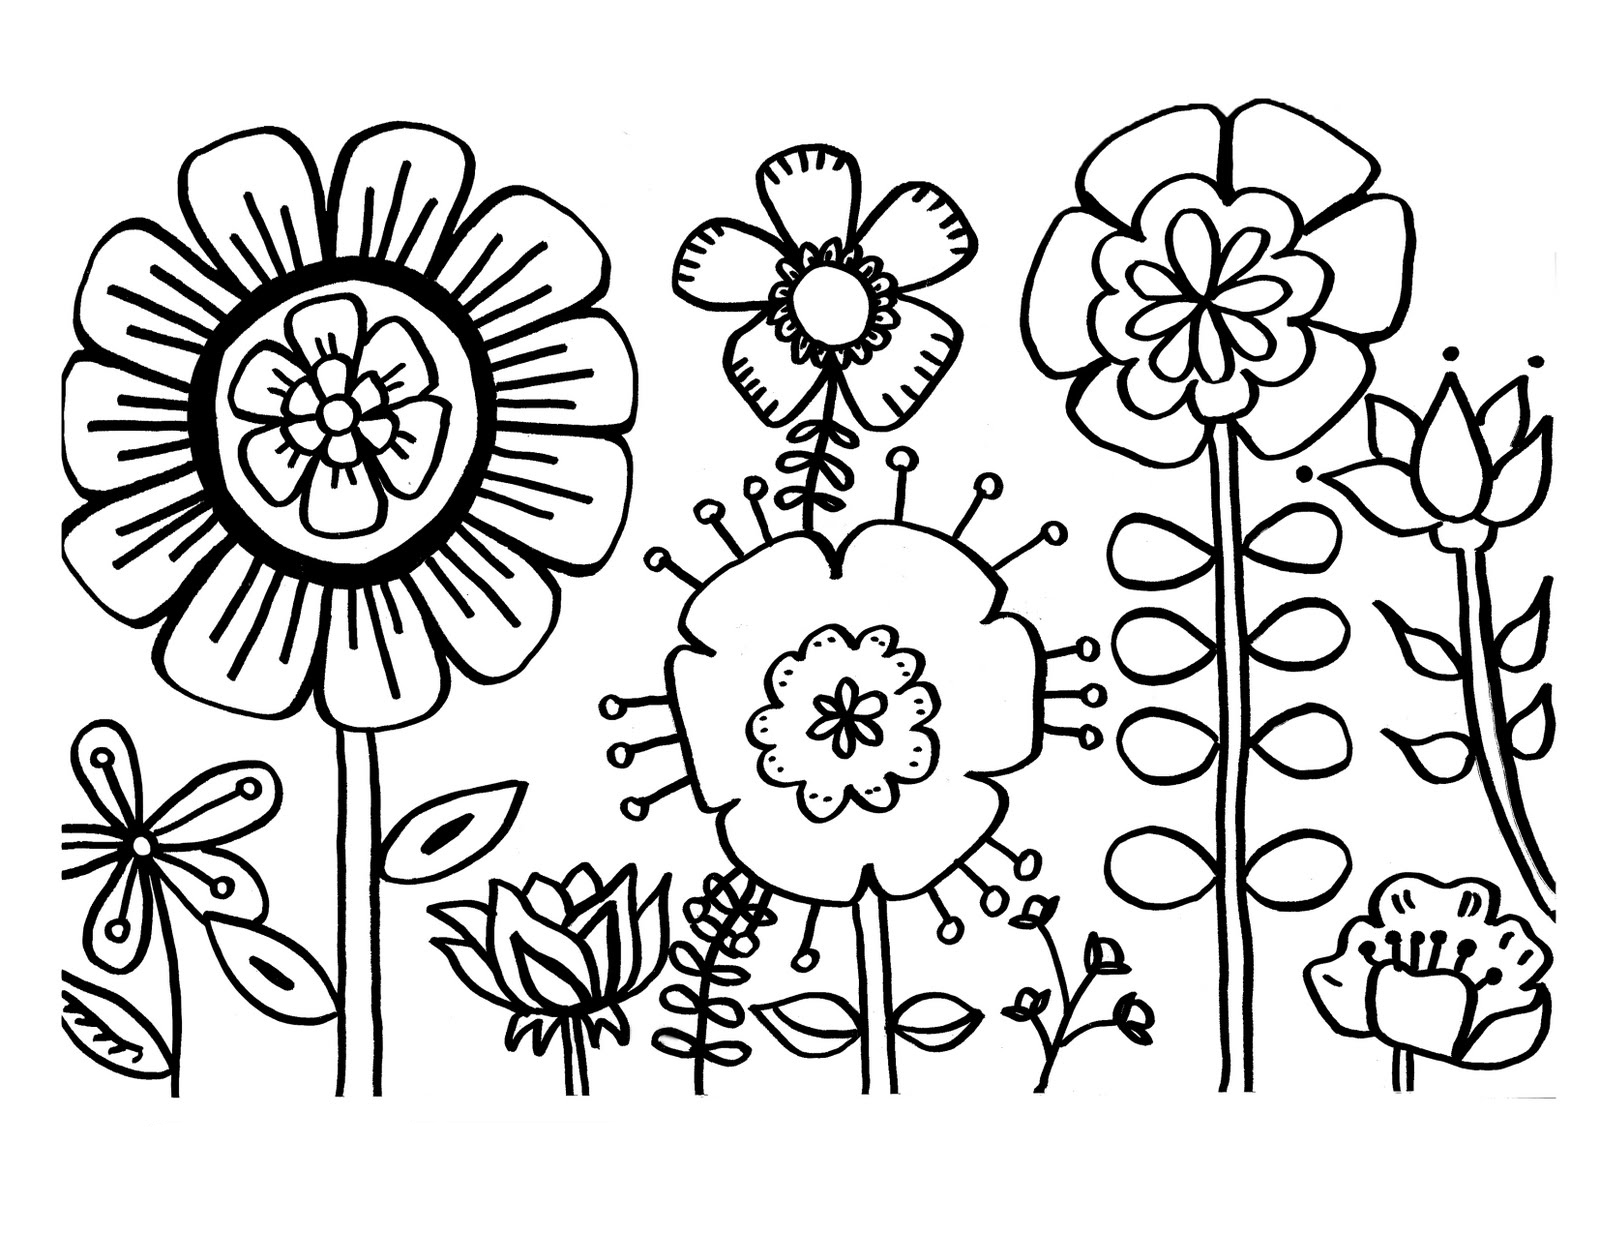 coloring pages about flowers free printable flower coloring pages for kids best pages flowers about coloring